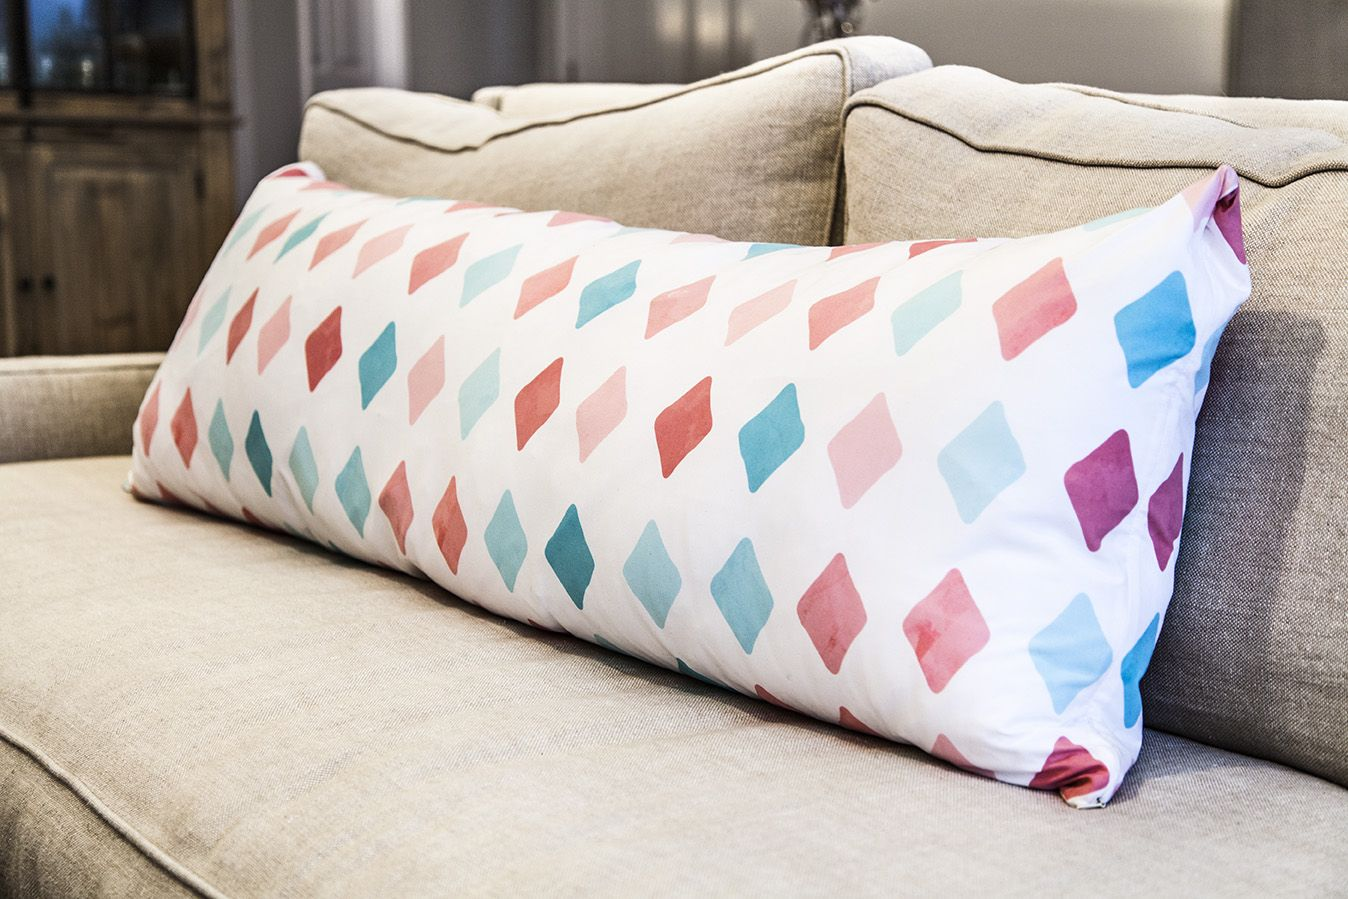 Custom printed body pillow for the bedroom. Design your